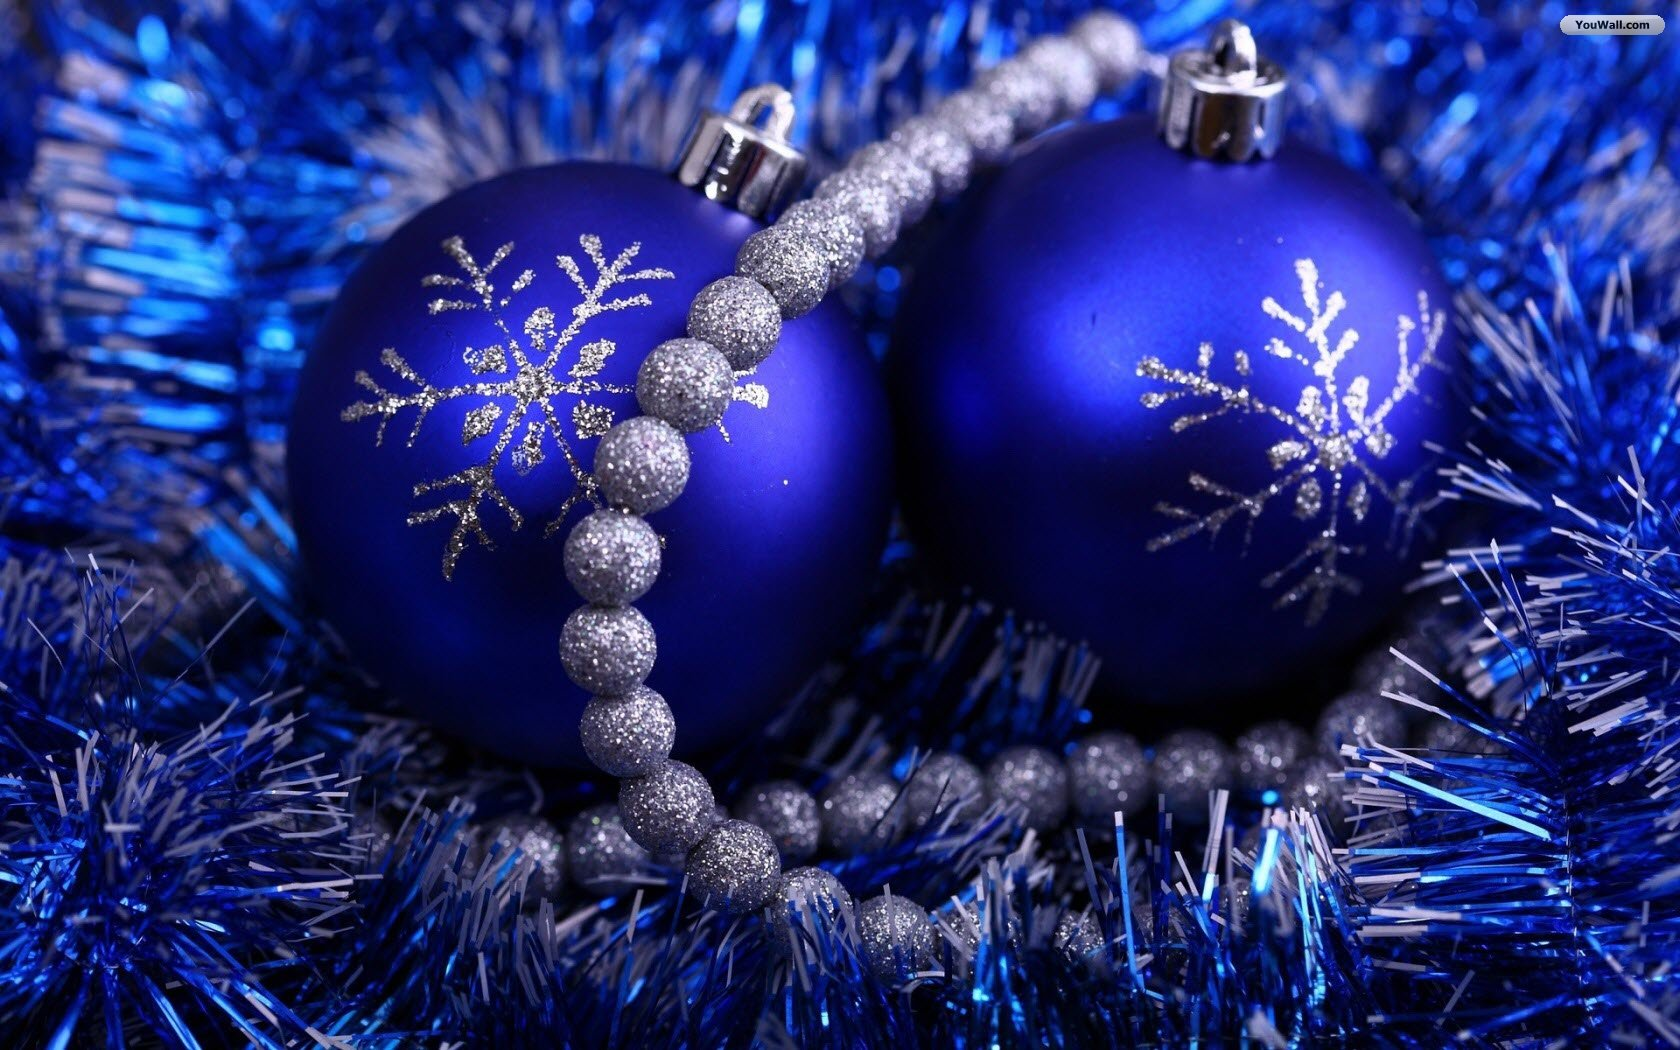 Free Christmas Wallpaper Backgrounds.Free Desktop Christmas Wallpaper Backgrounds Wallpaper 1680x1050